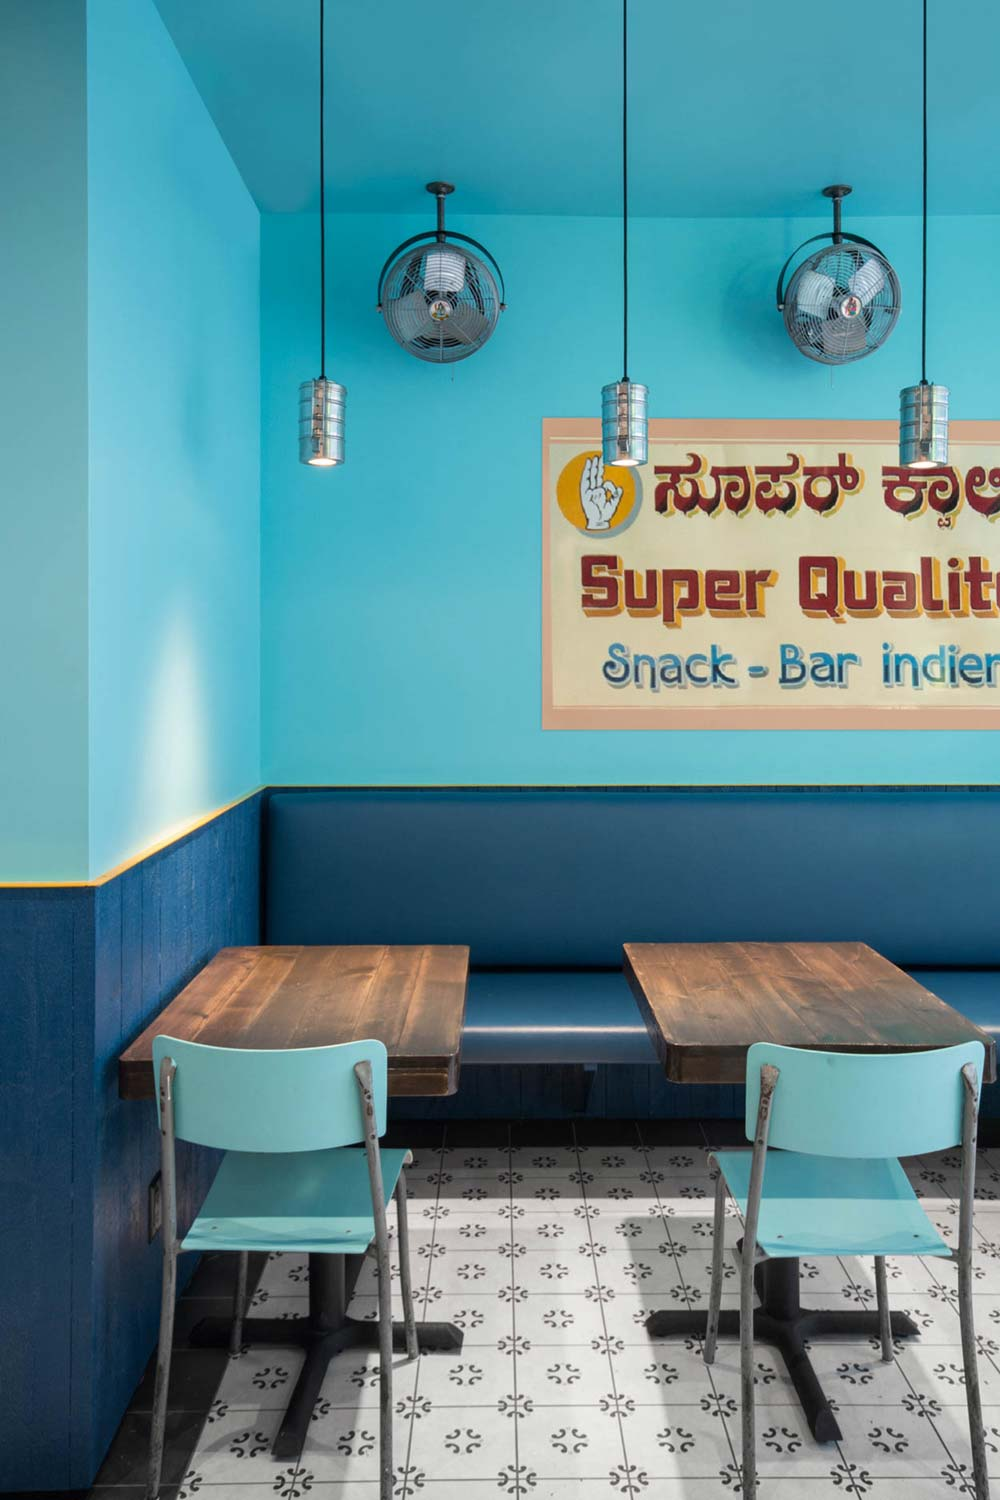 indian restaurant design dd3 - The Super Quality Indian Snack Bar